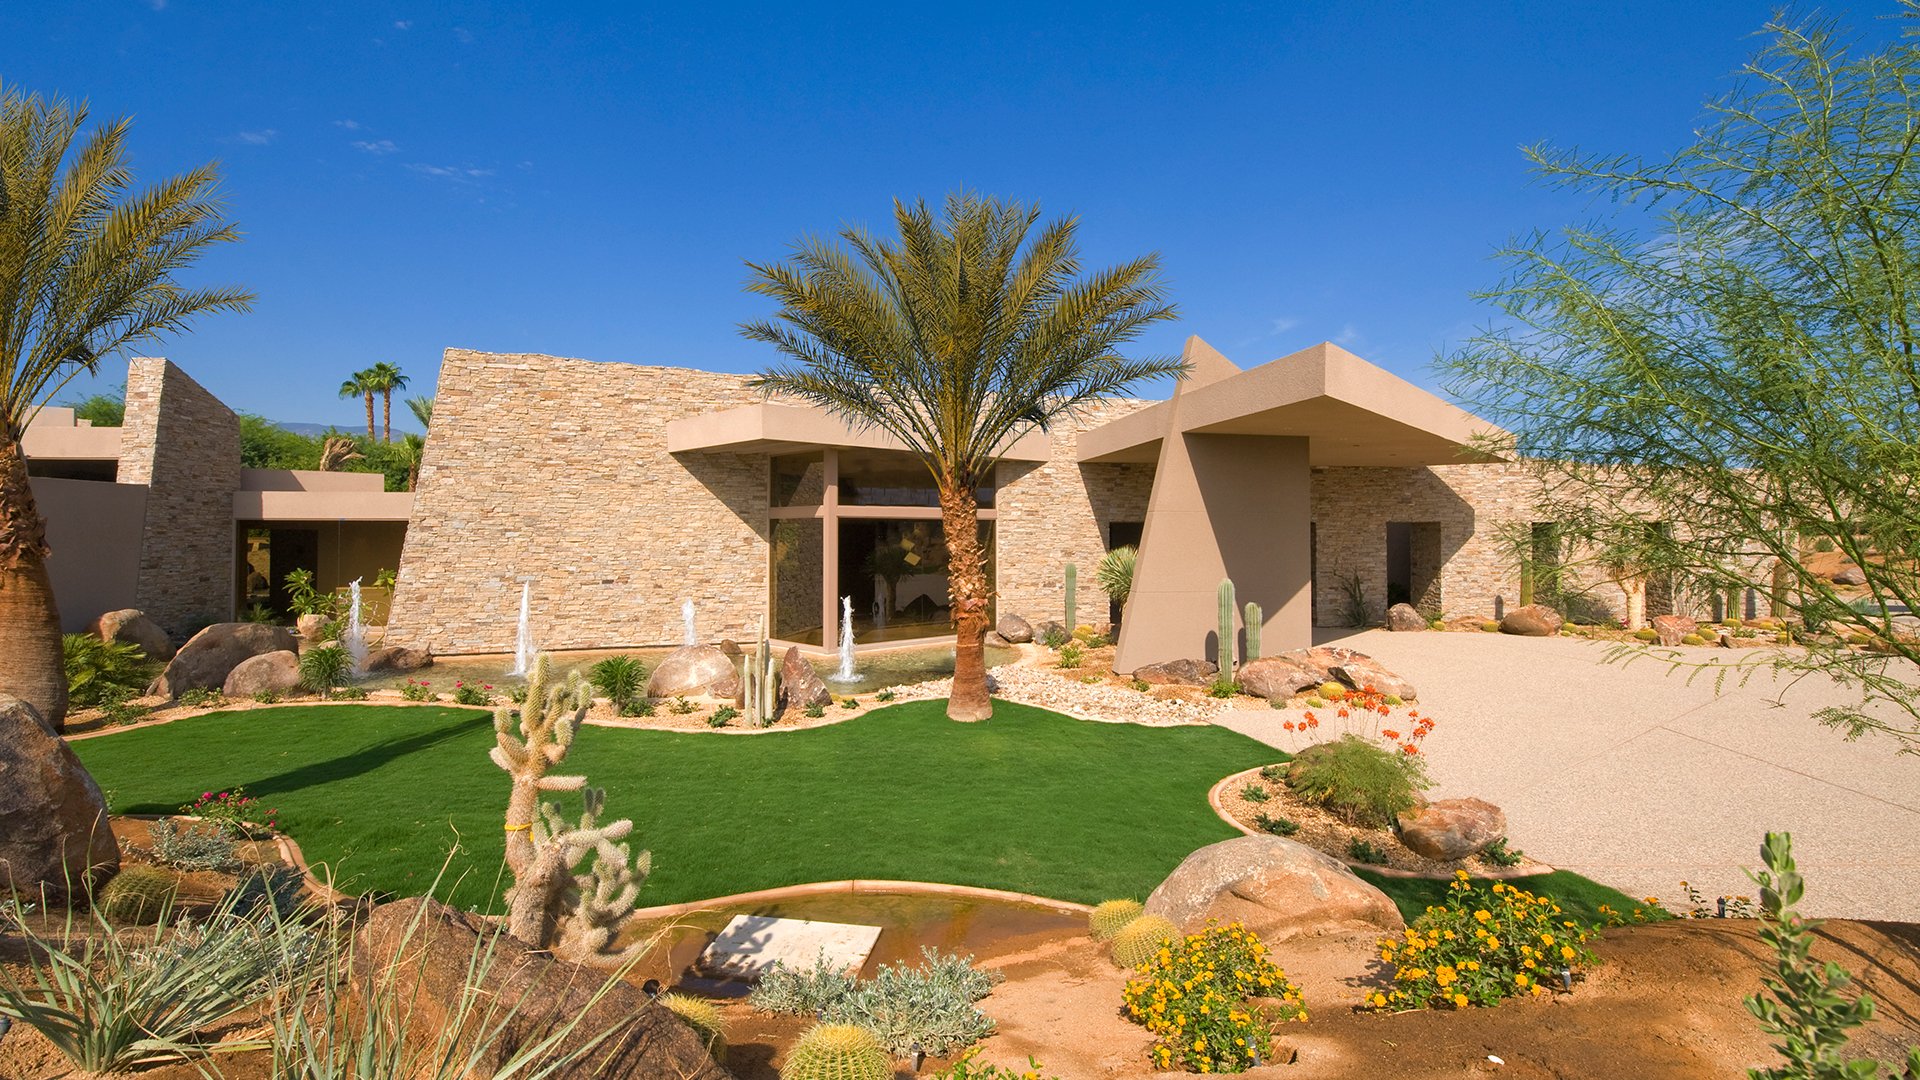 Home palm springs landscape design hardscaping and for Garden design with palms